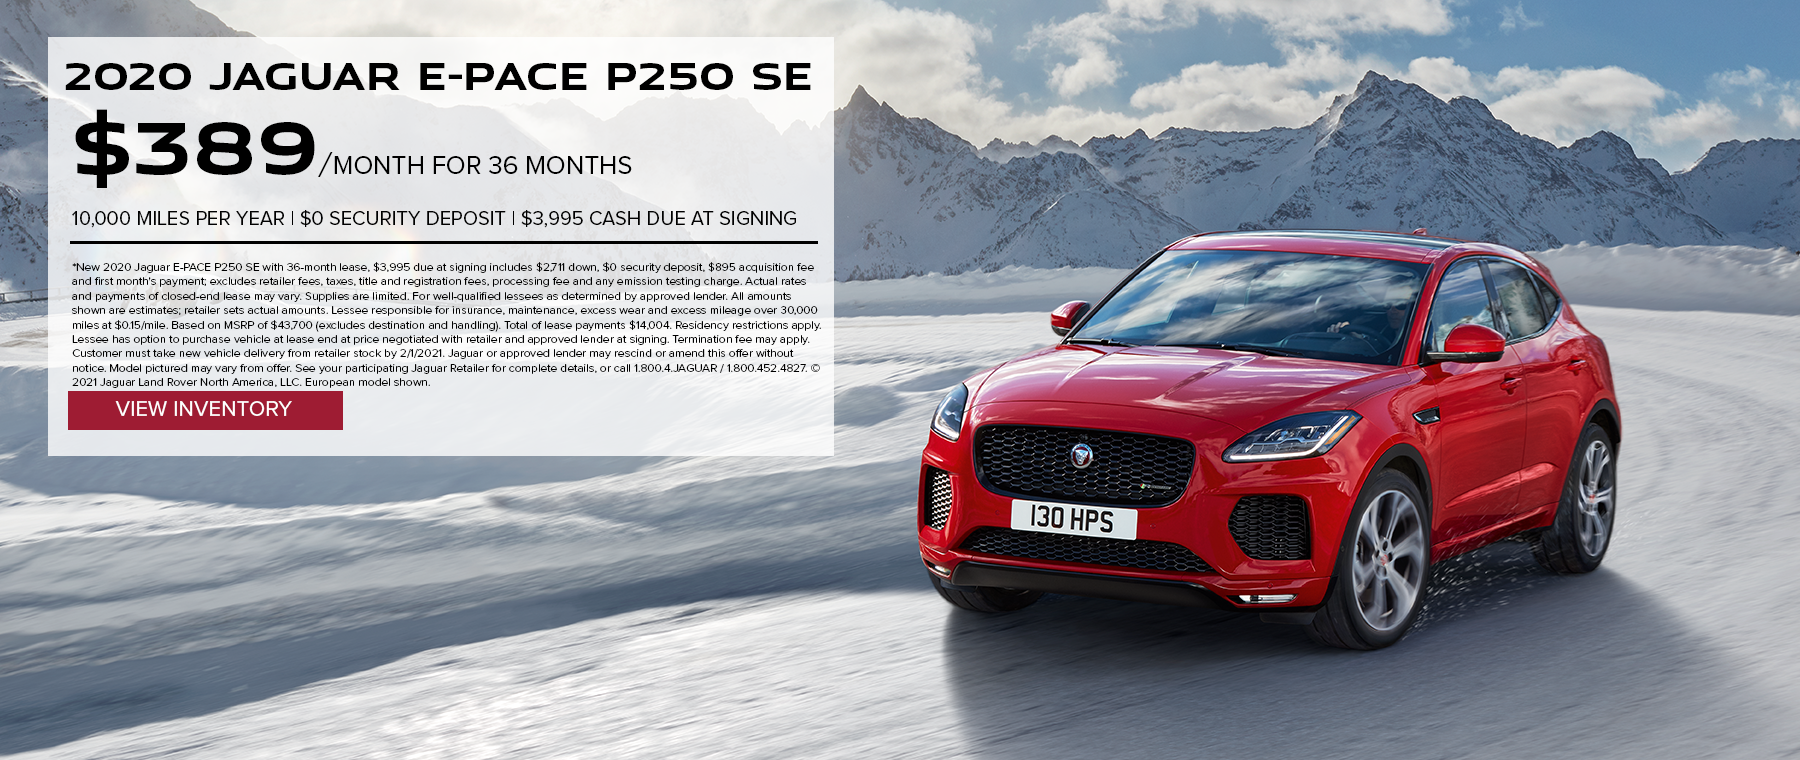 2020 JAGUAR E-PACE P250 SE. $389 PER MONTH. 36 MONTH LEASE TERM. $3,995 CASH DUE AT SIGNING. $0 SECURITY DEPOSIT. 10,000 MILES PER YEAR. EXCLUDES RETAILER FEES, TAXES, TITLE AND REGISTRATION FEES, PROCESSING FEE AND ANY EMISSION TESTING CHARGE. OFFER ENDS 2/1/2021.